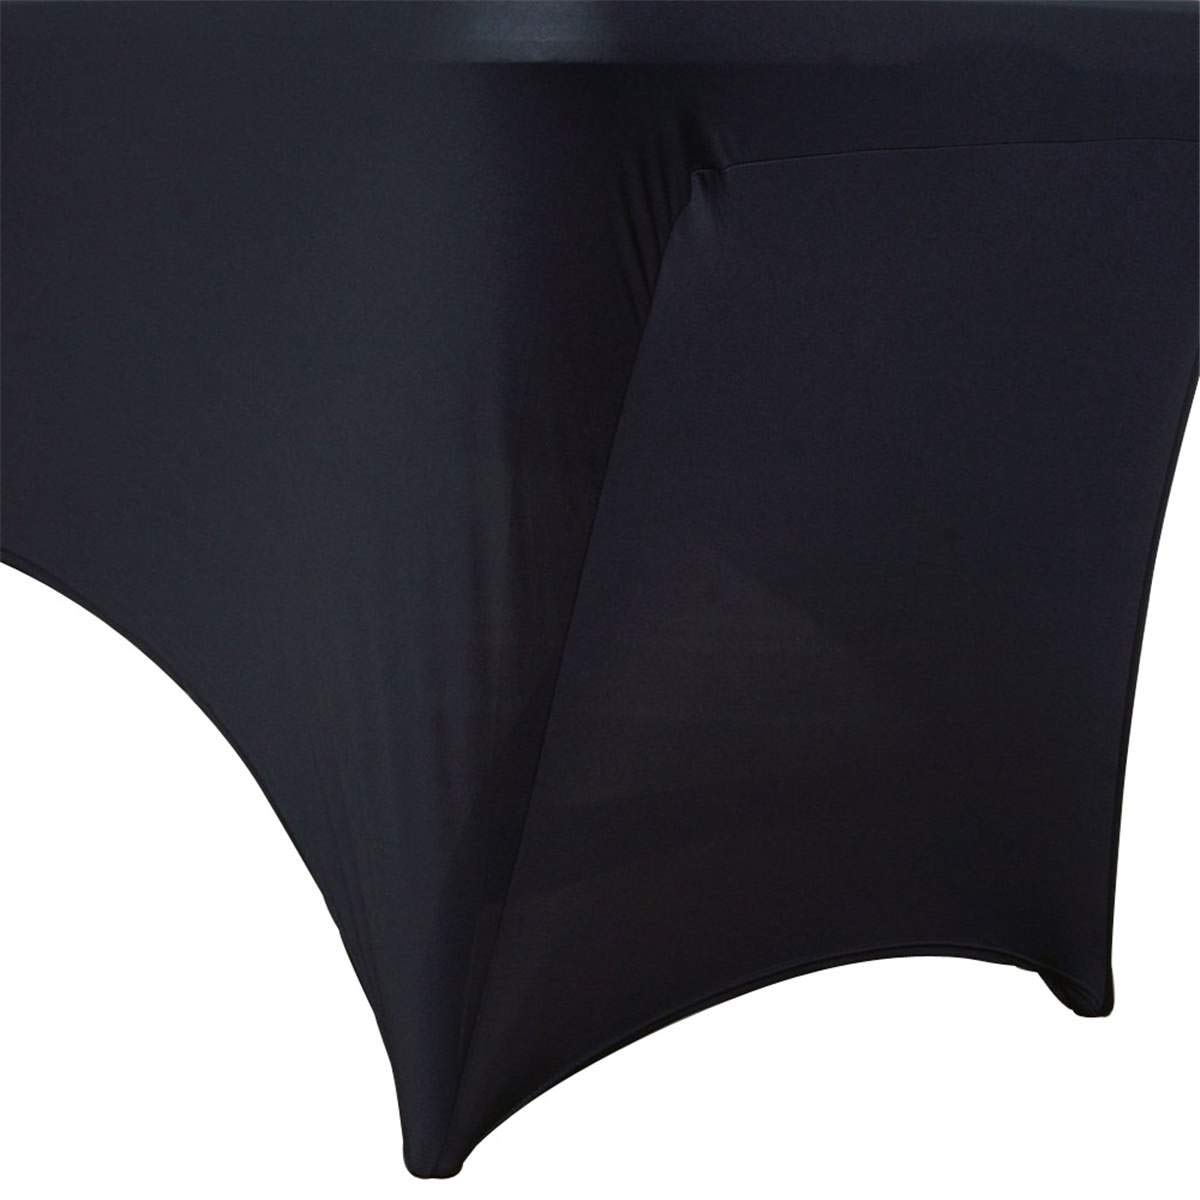 Spandex Table Cover - Table Cloth Rectangular Wedding Long Bar Elastic Stretch Spandex Table Cover Long Bar Hotel Event Party Desk Cloth Black White